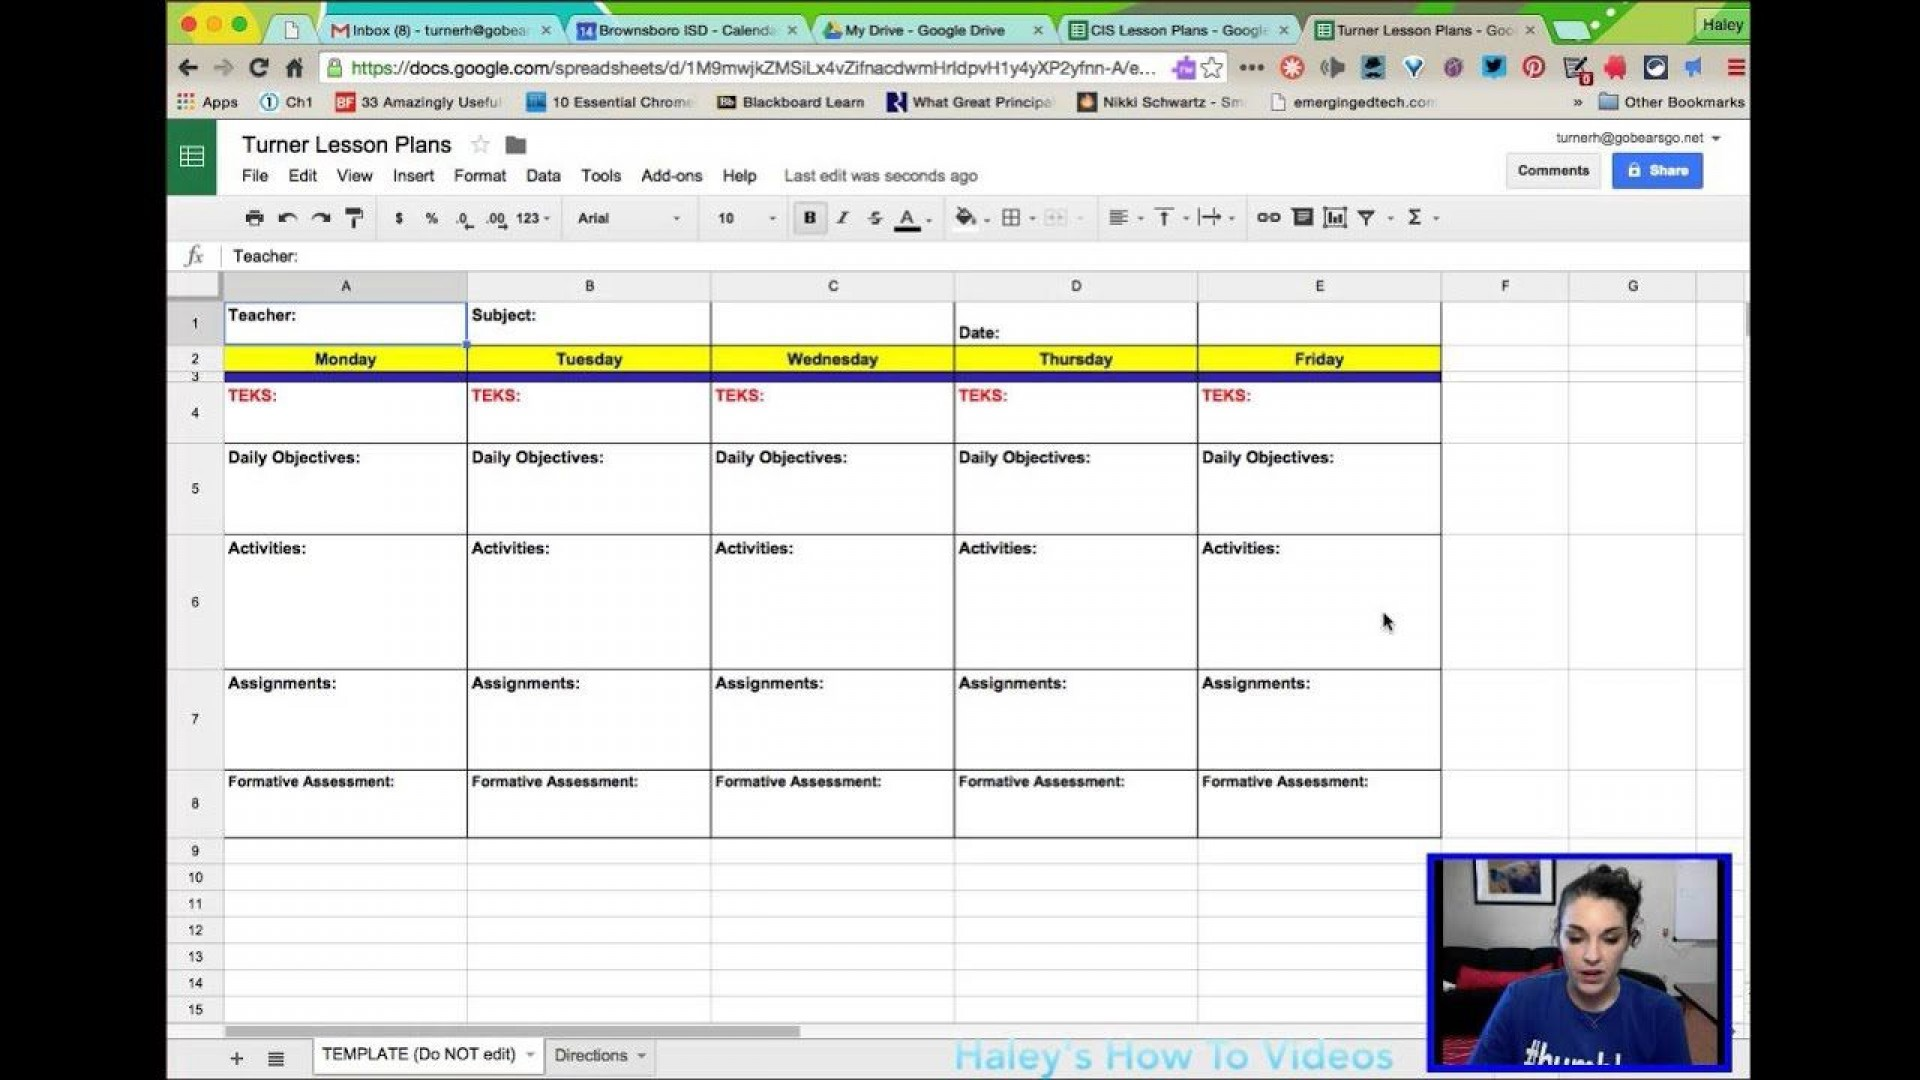 002 Archaicawful Lesson Plan Template Google Doc Example  Docs Danielson Siop High School1920